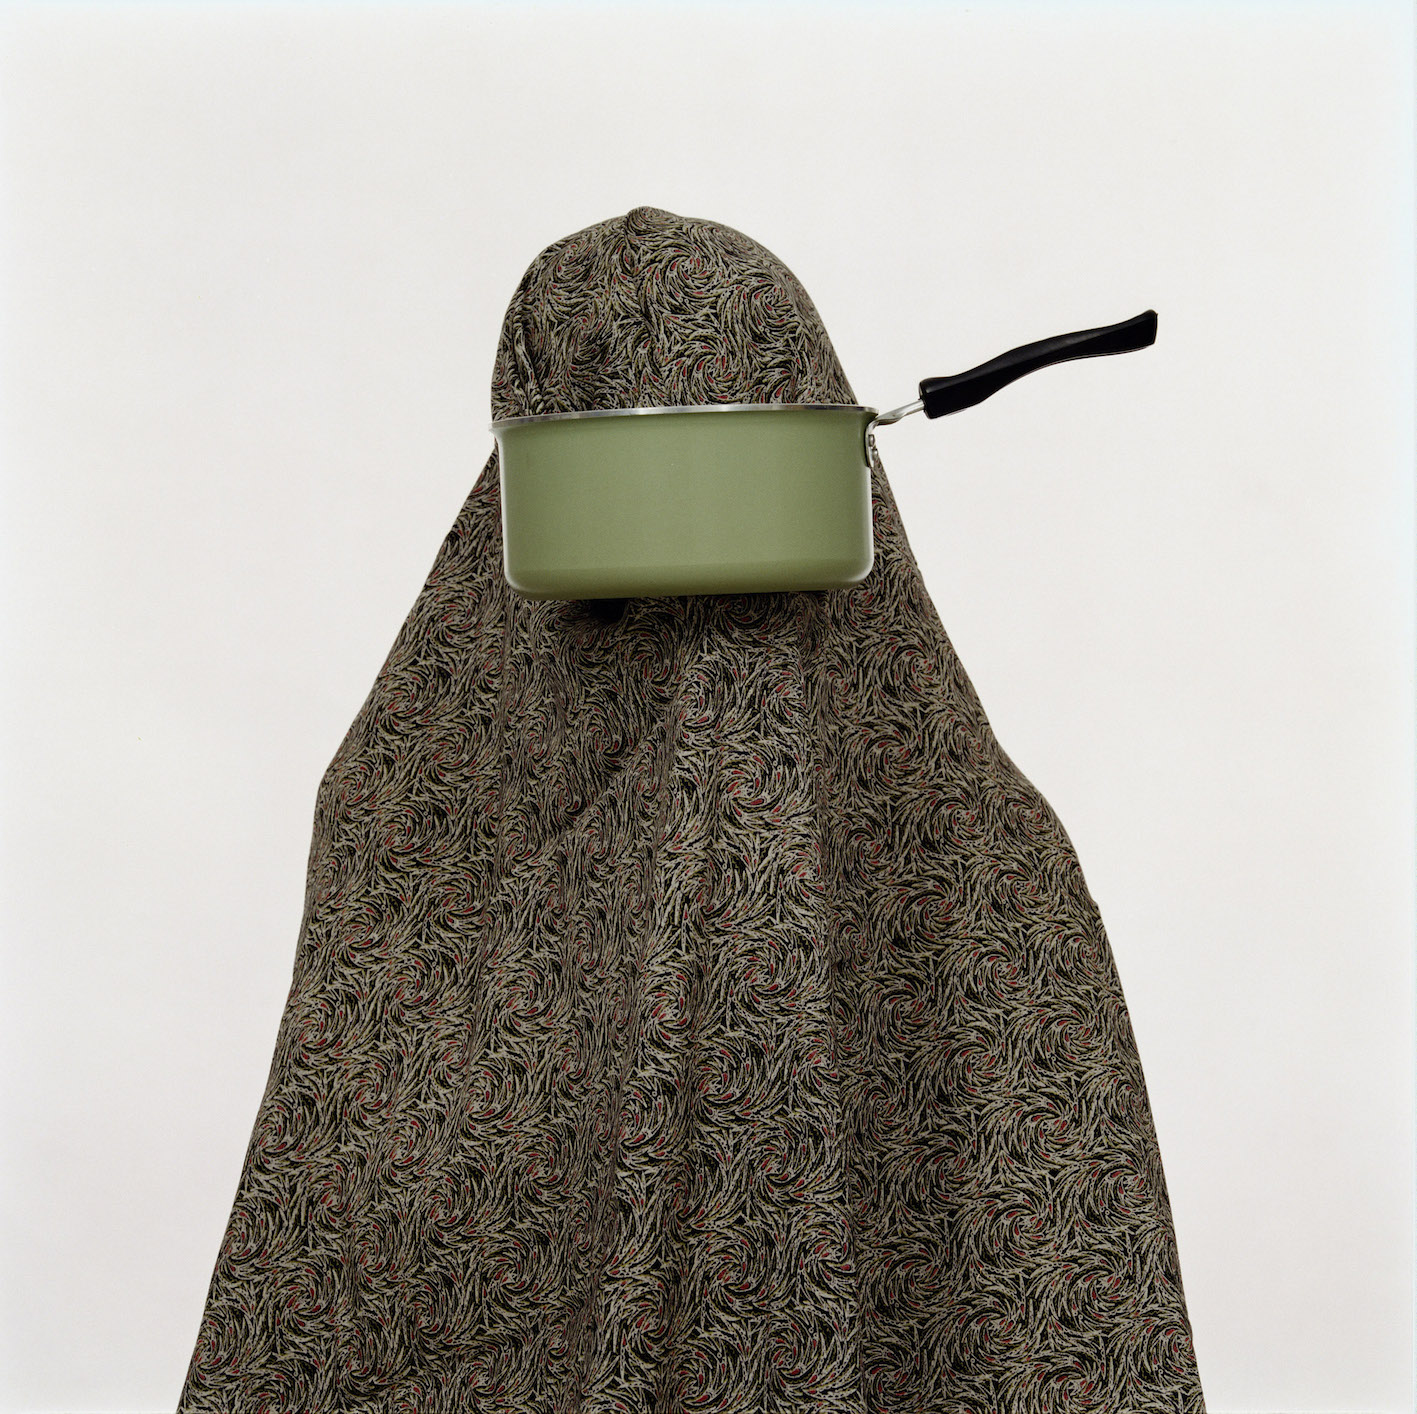 Shadi Ghadirian, Like Everyday #5, 2002.